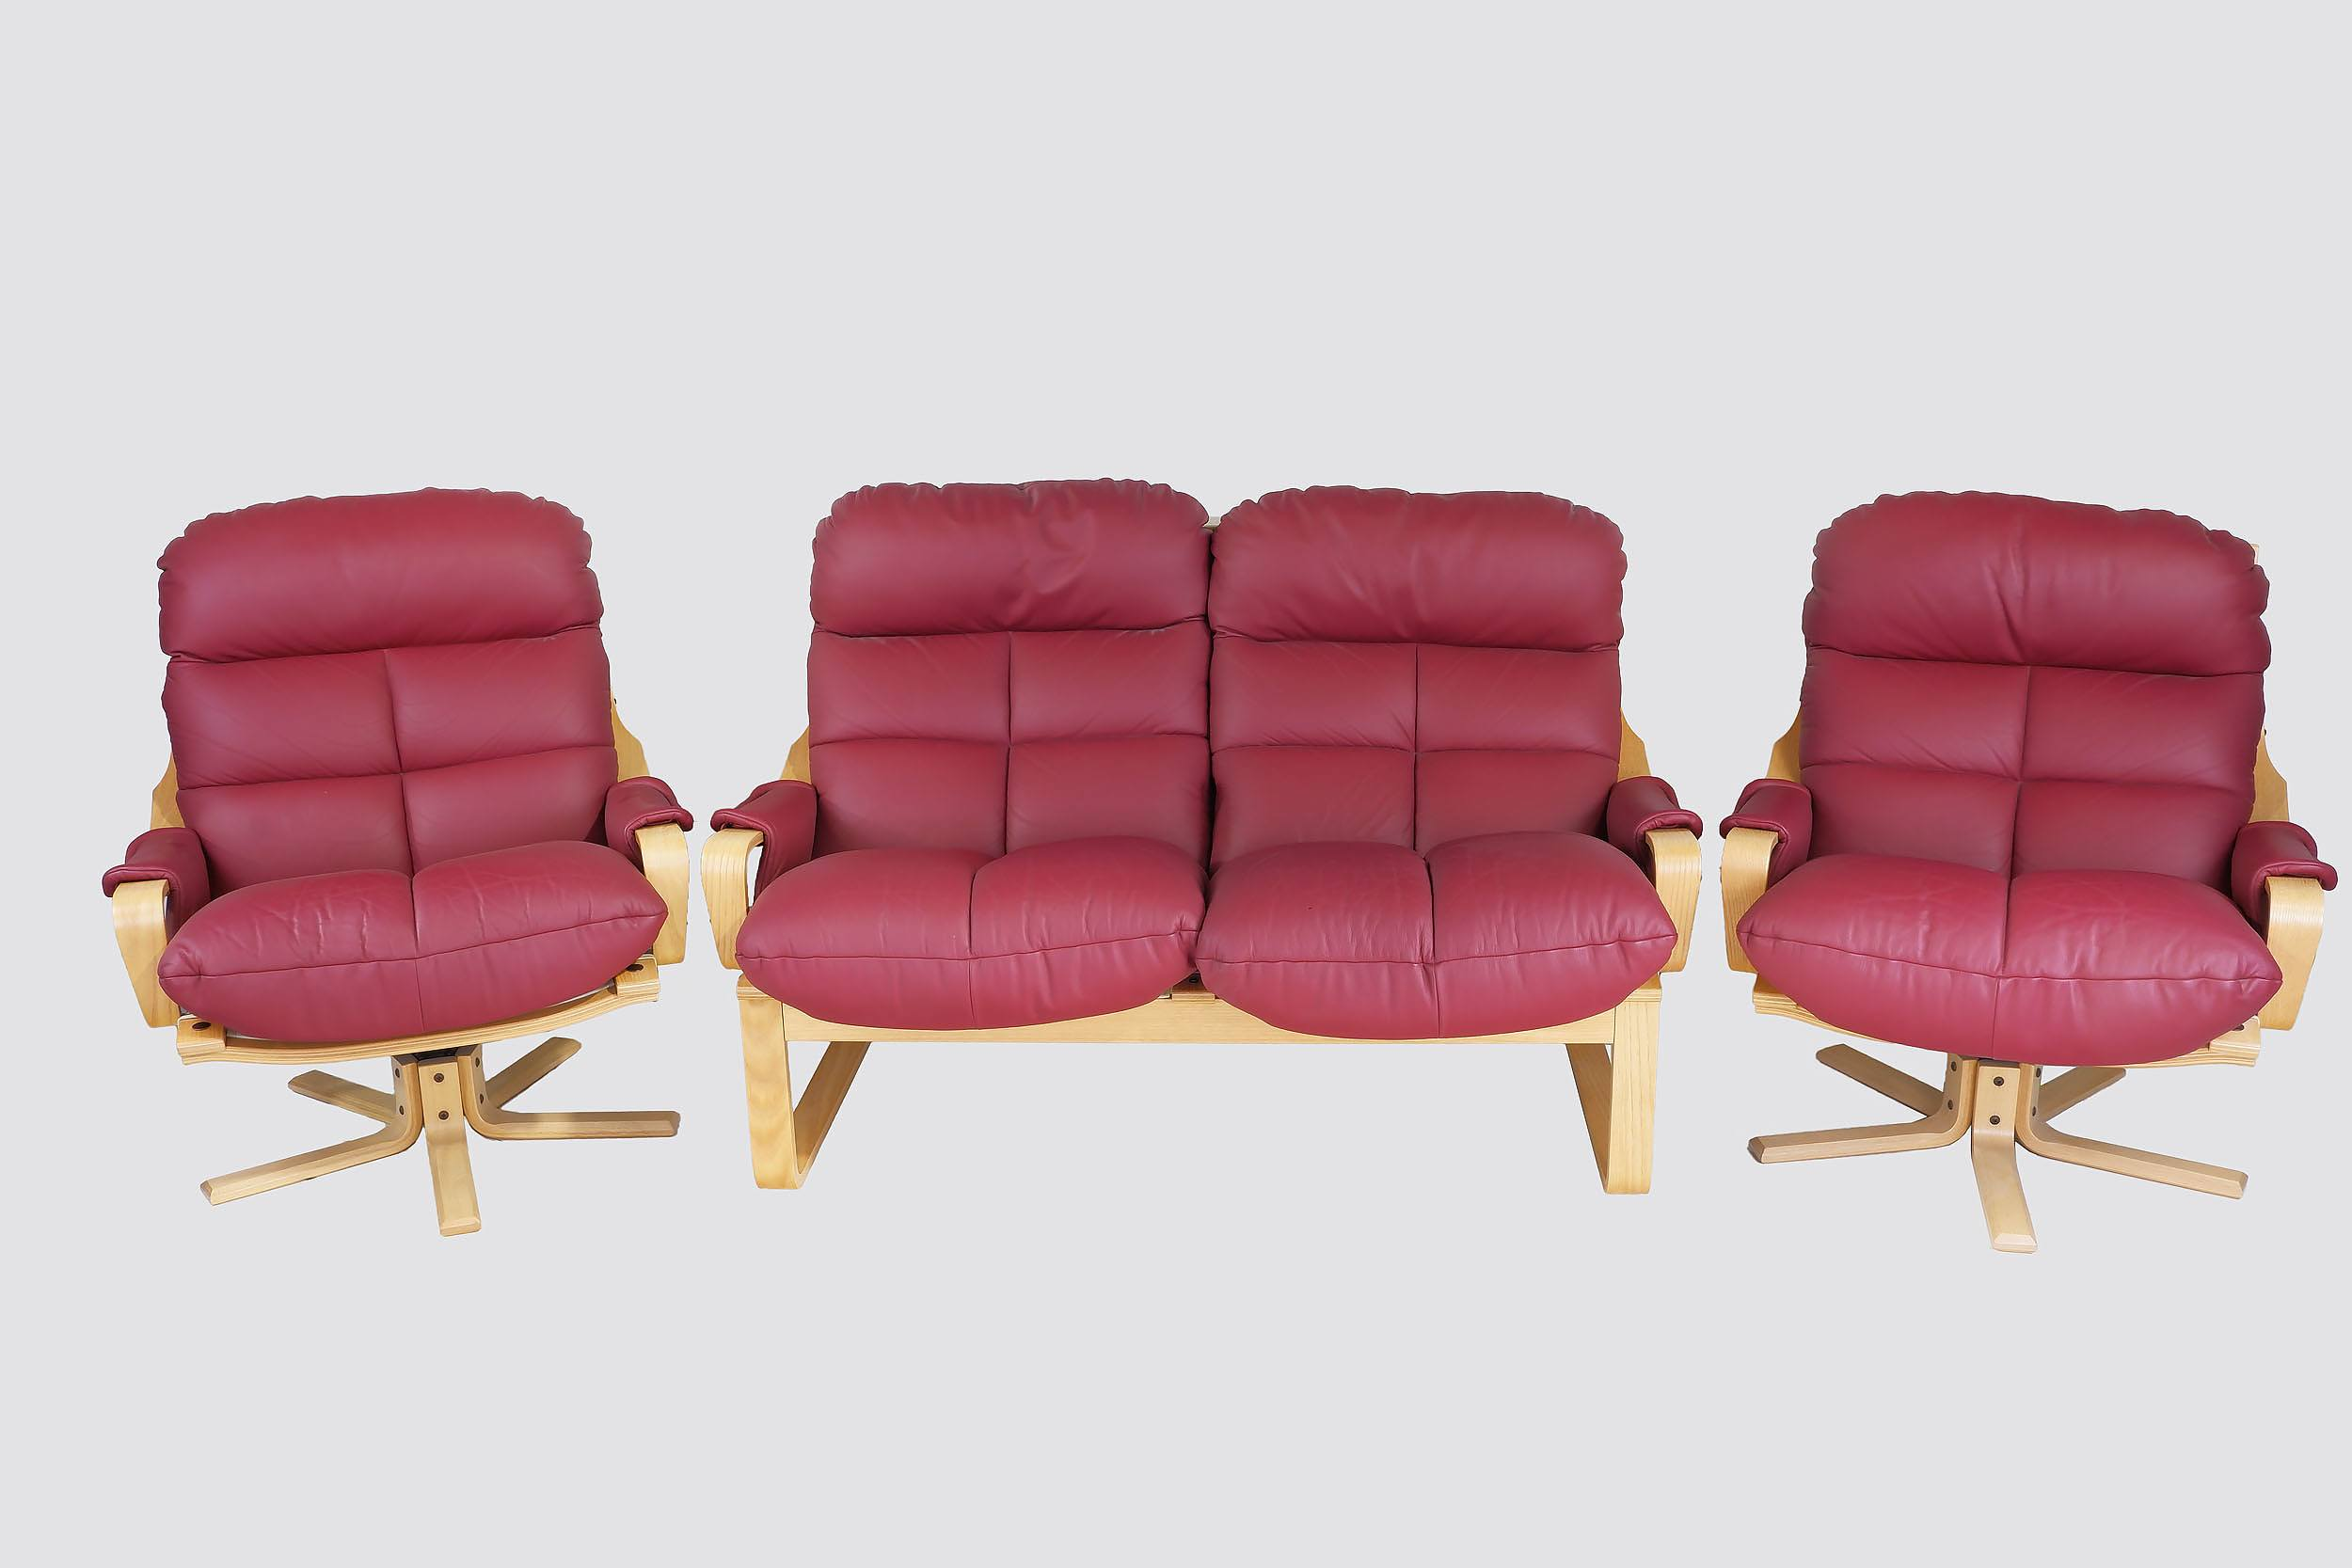 'Tessa Atlantis Reddish Maroon Leather Upholstered Lounge Suite Designed by Fred Lowen'